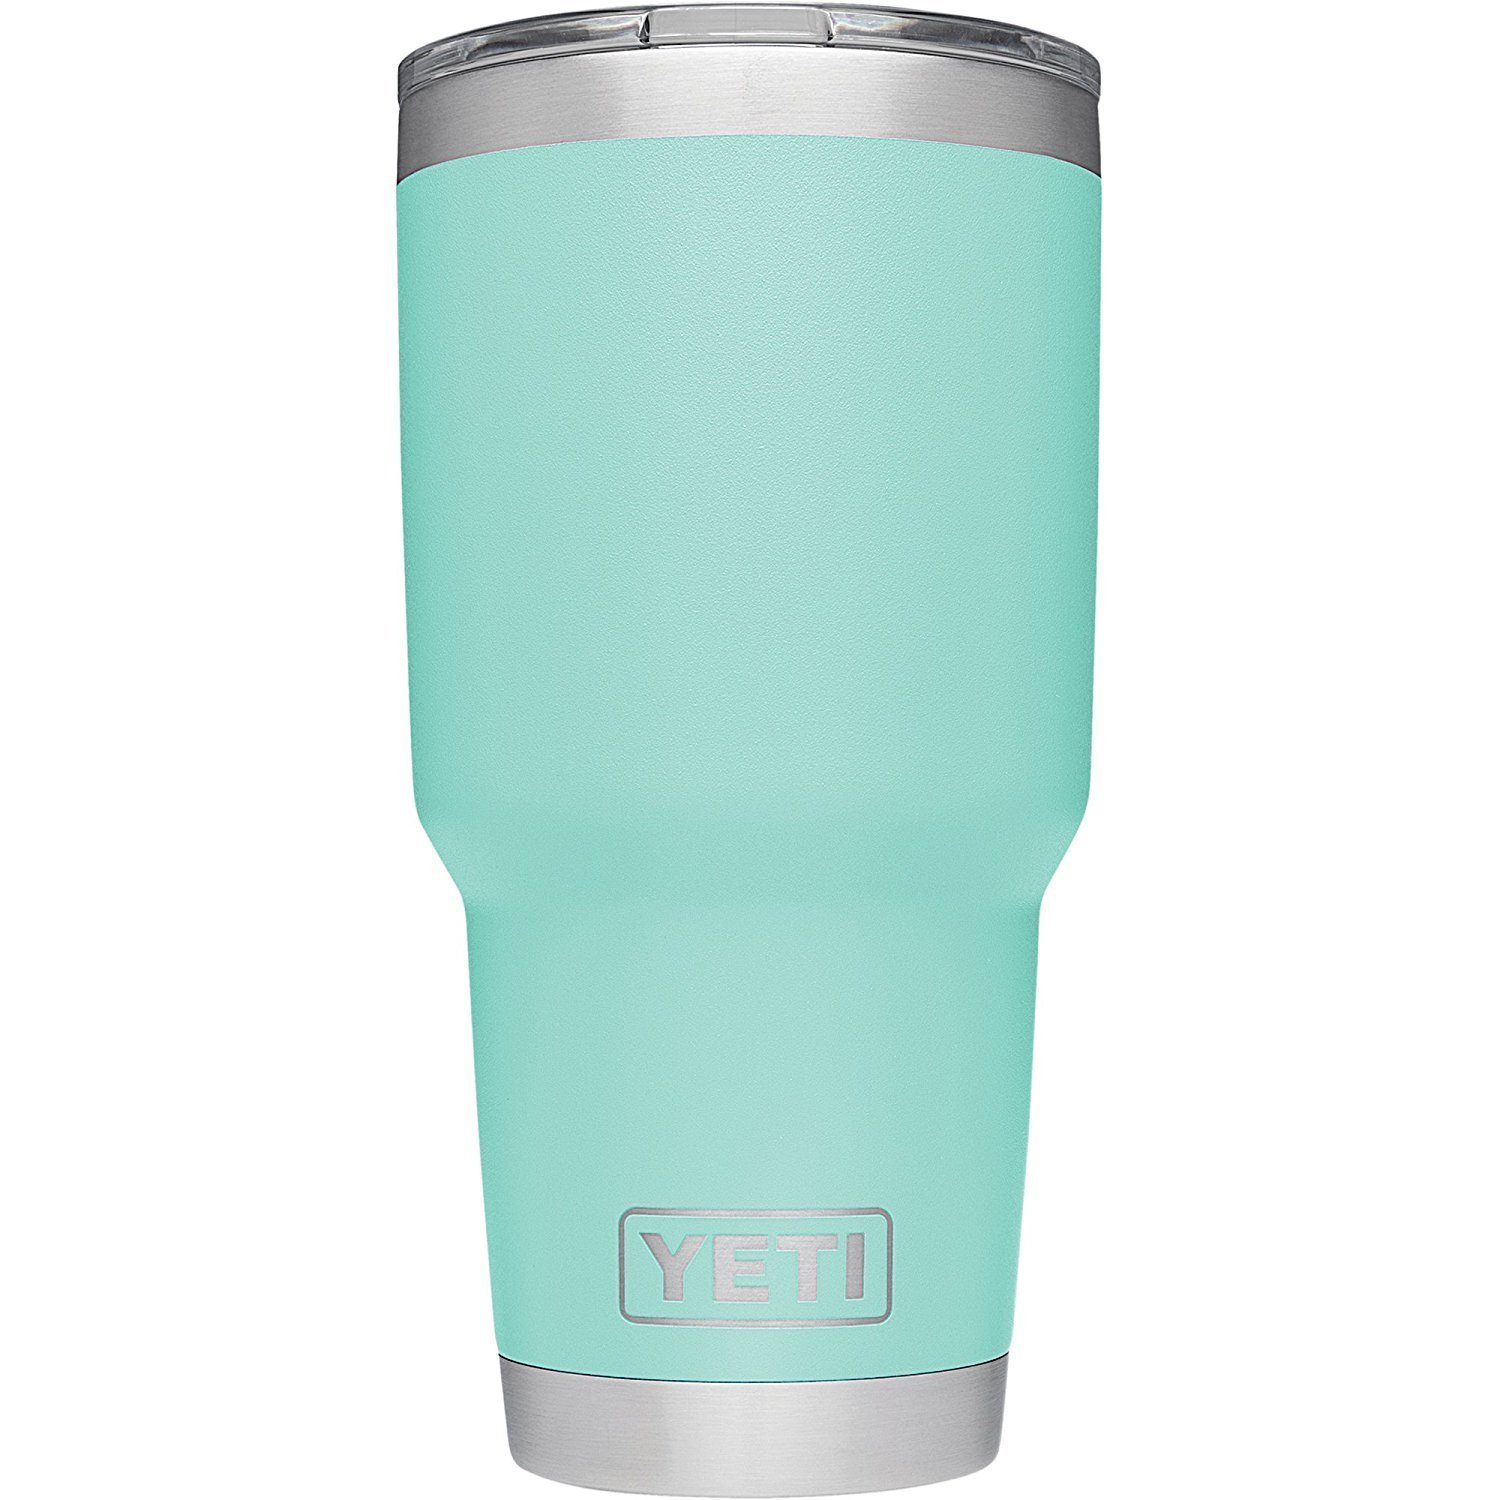 1. YETI 30 oz Stainless Steel Tumbler with Lid